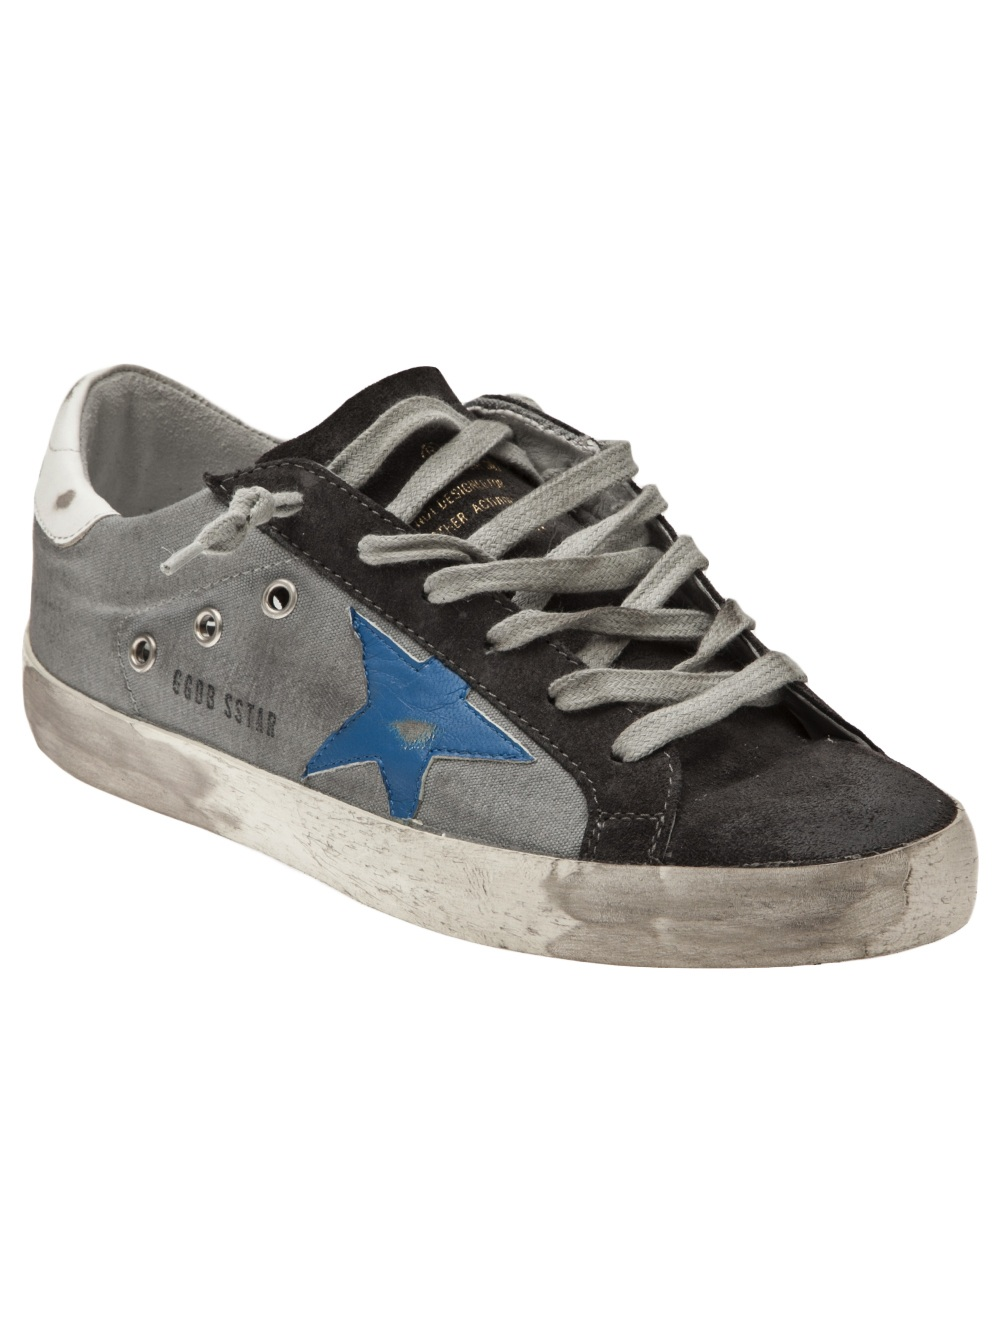 Golden goose deluxe brand Superstar Sneakers in Black | Lyst